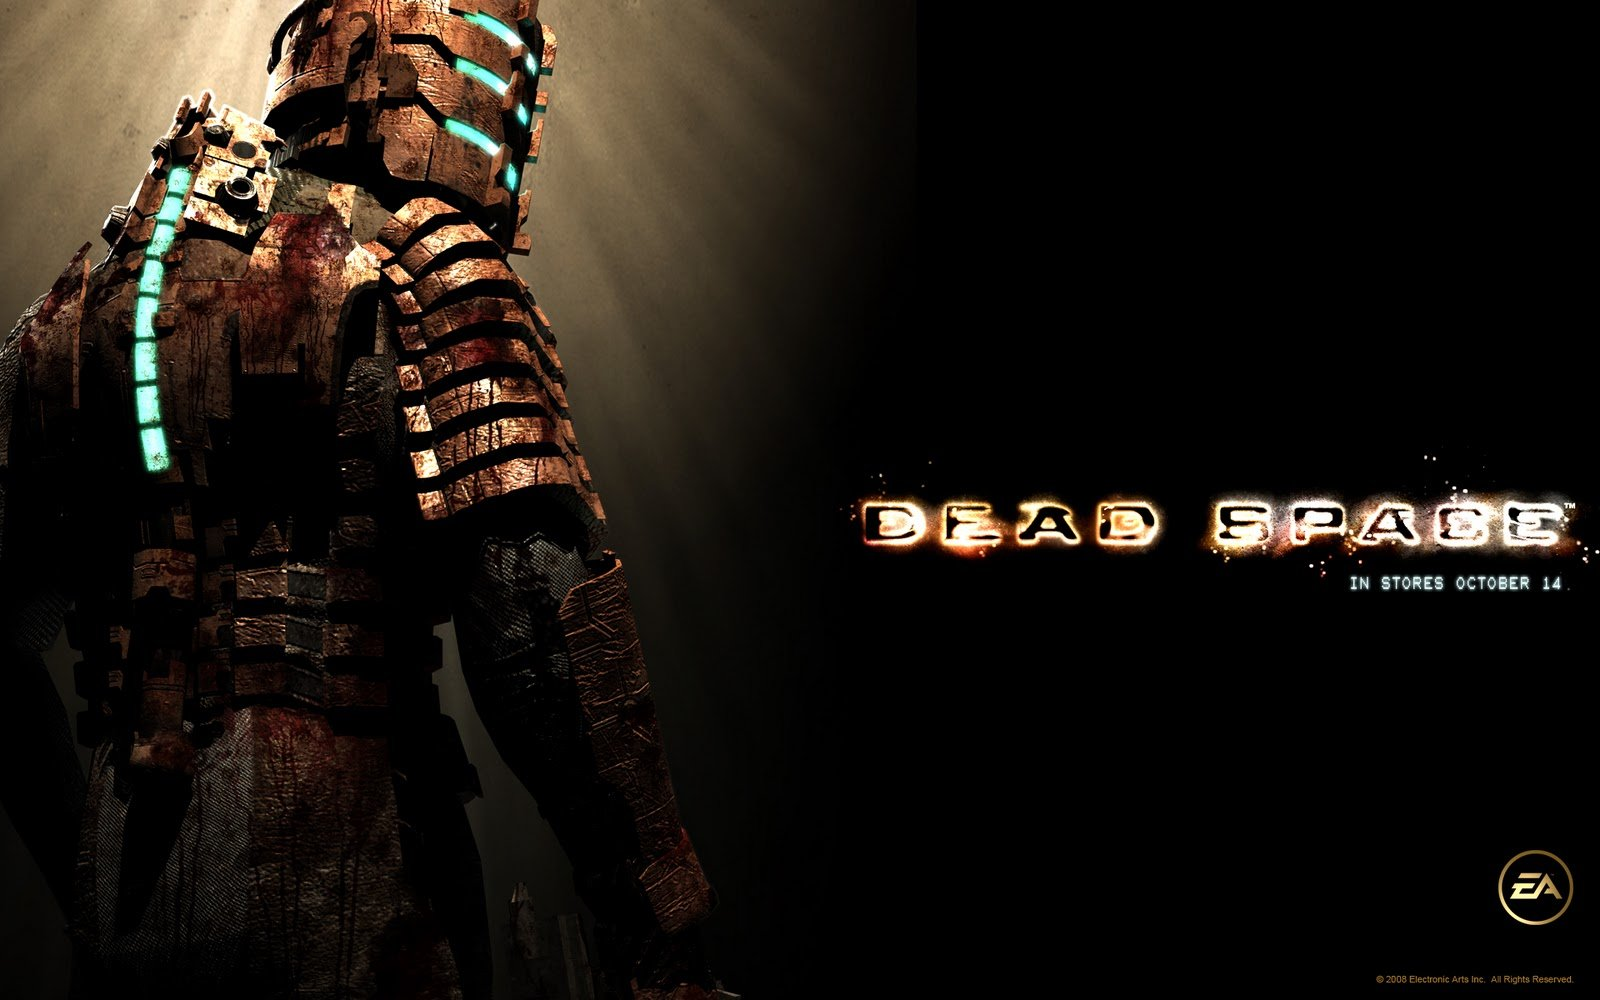 Dead Space 2 Wallpaper HD 1600x1000